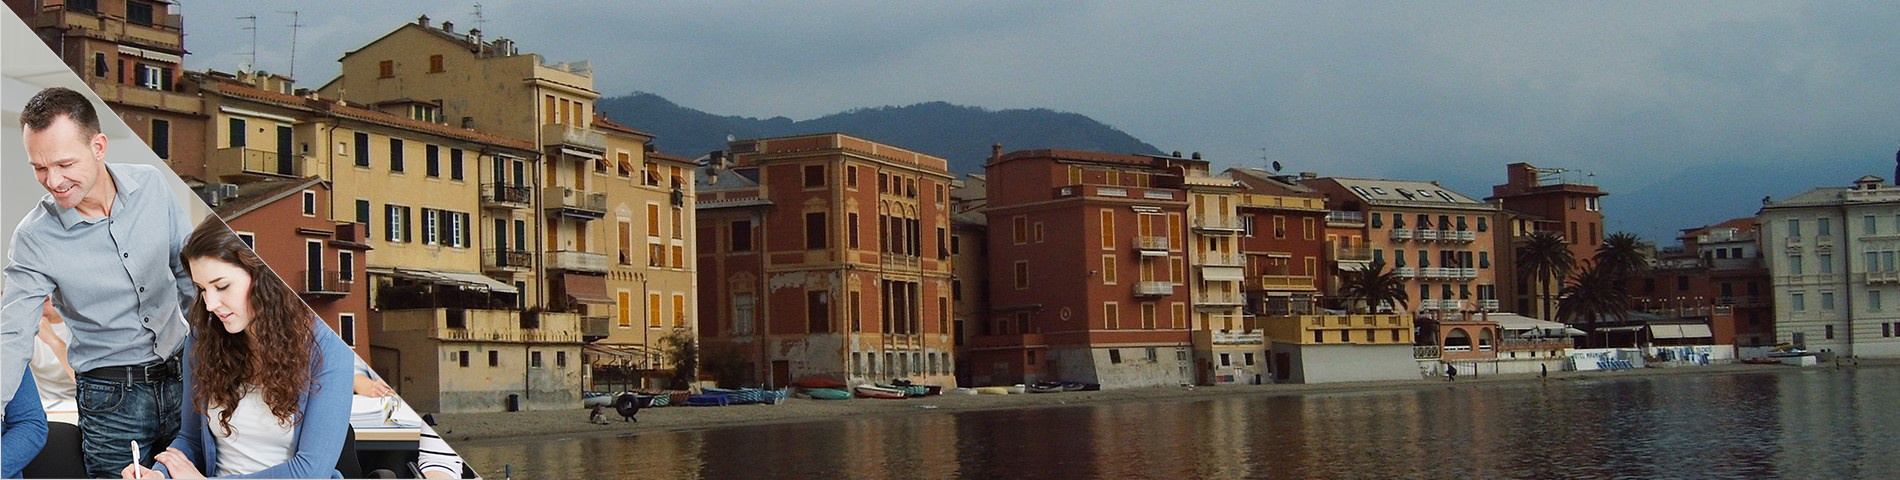 Sestri Levante - Combi: Group+Indiv